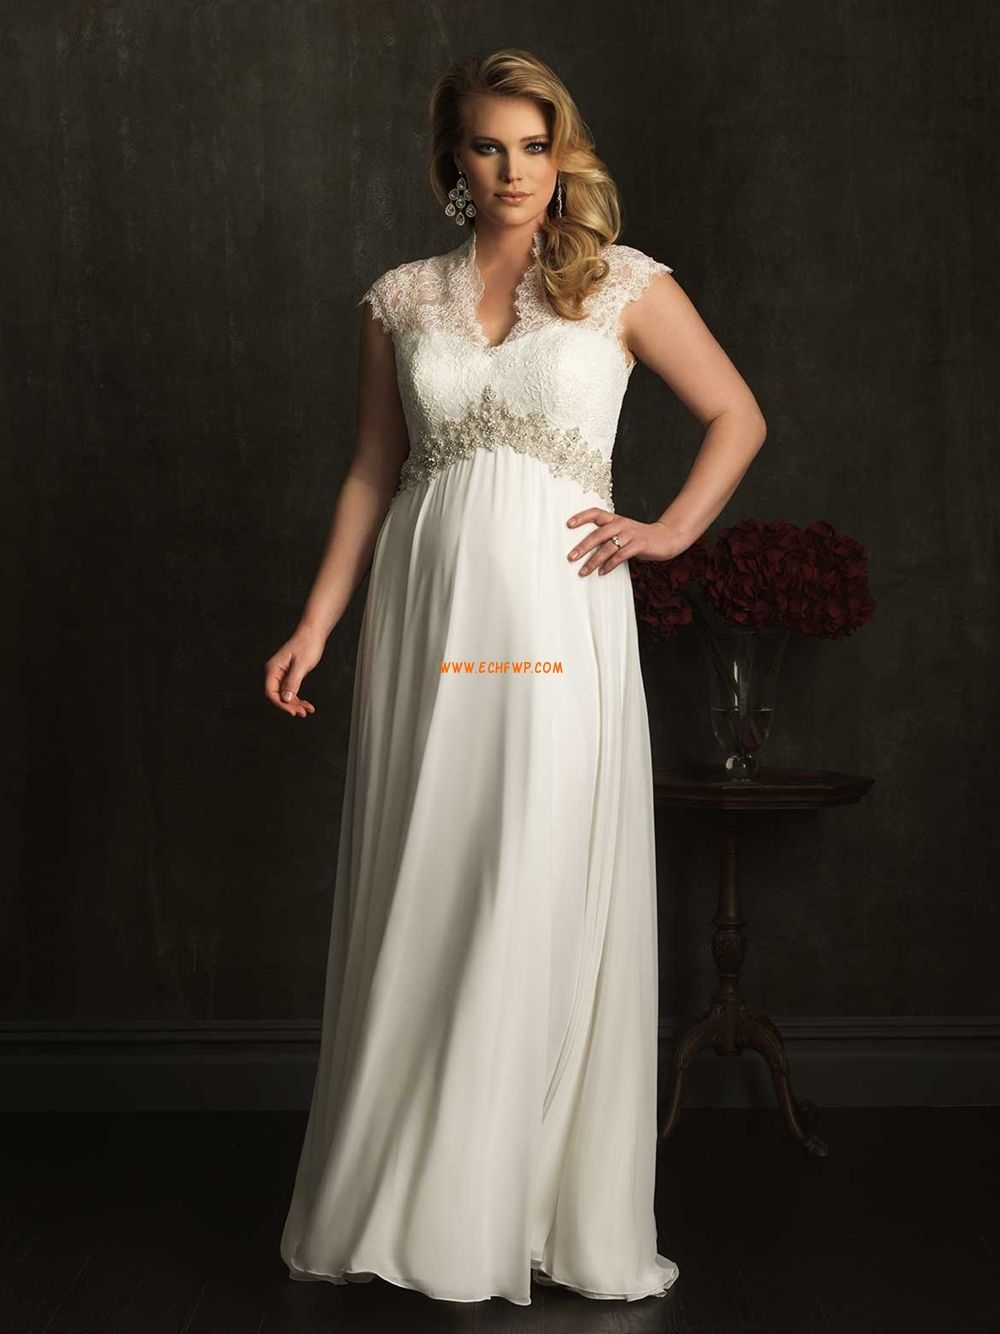 Chiffon Classic & Timeless Crystal Detailing Wedding Dresses 2014 ...